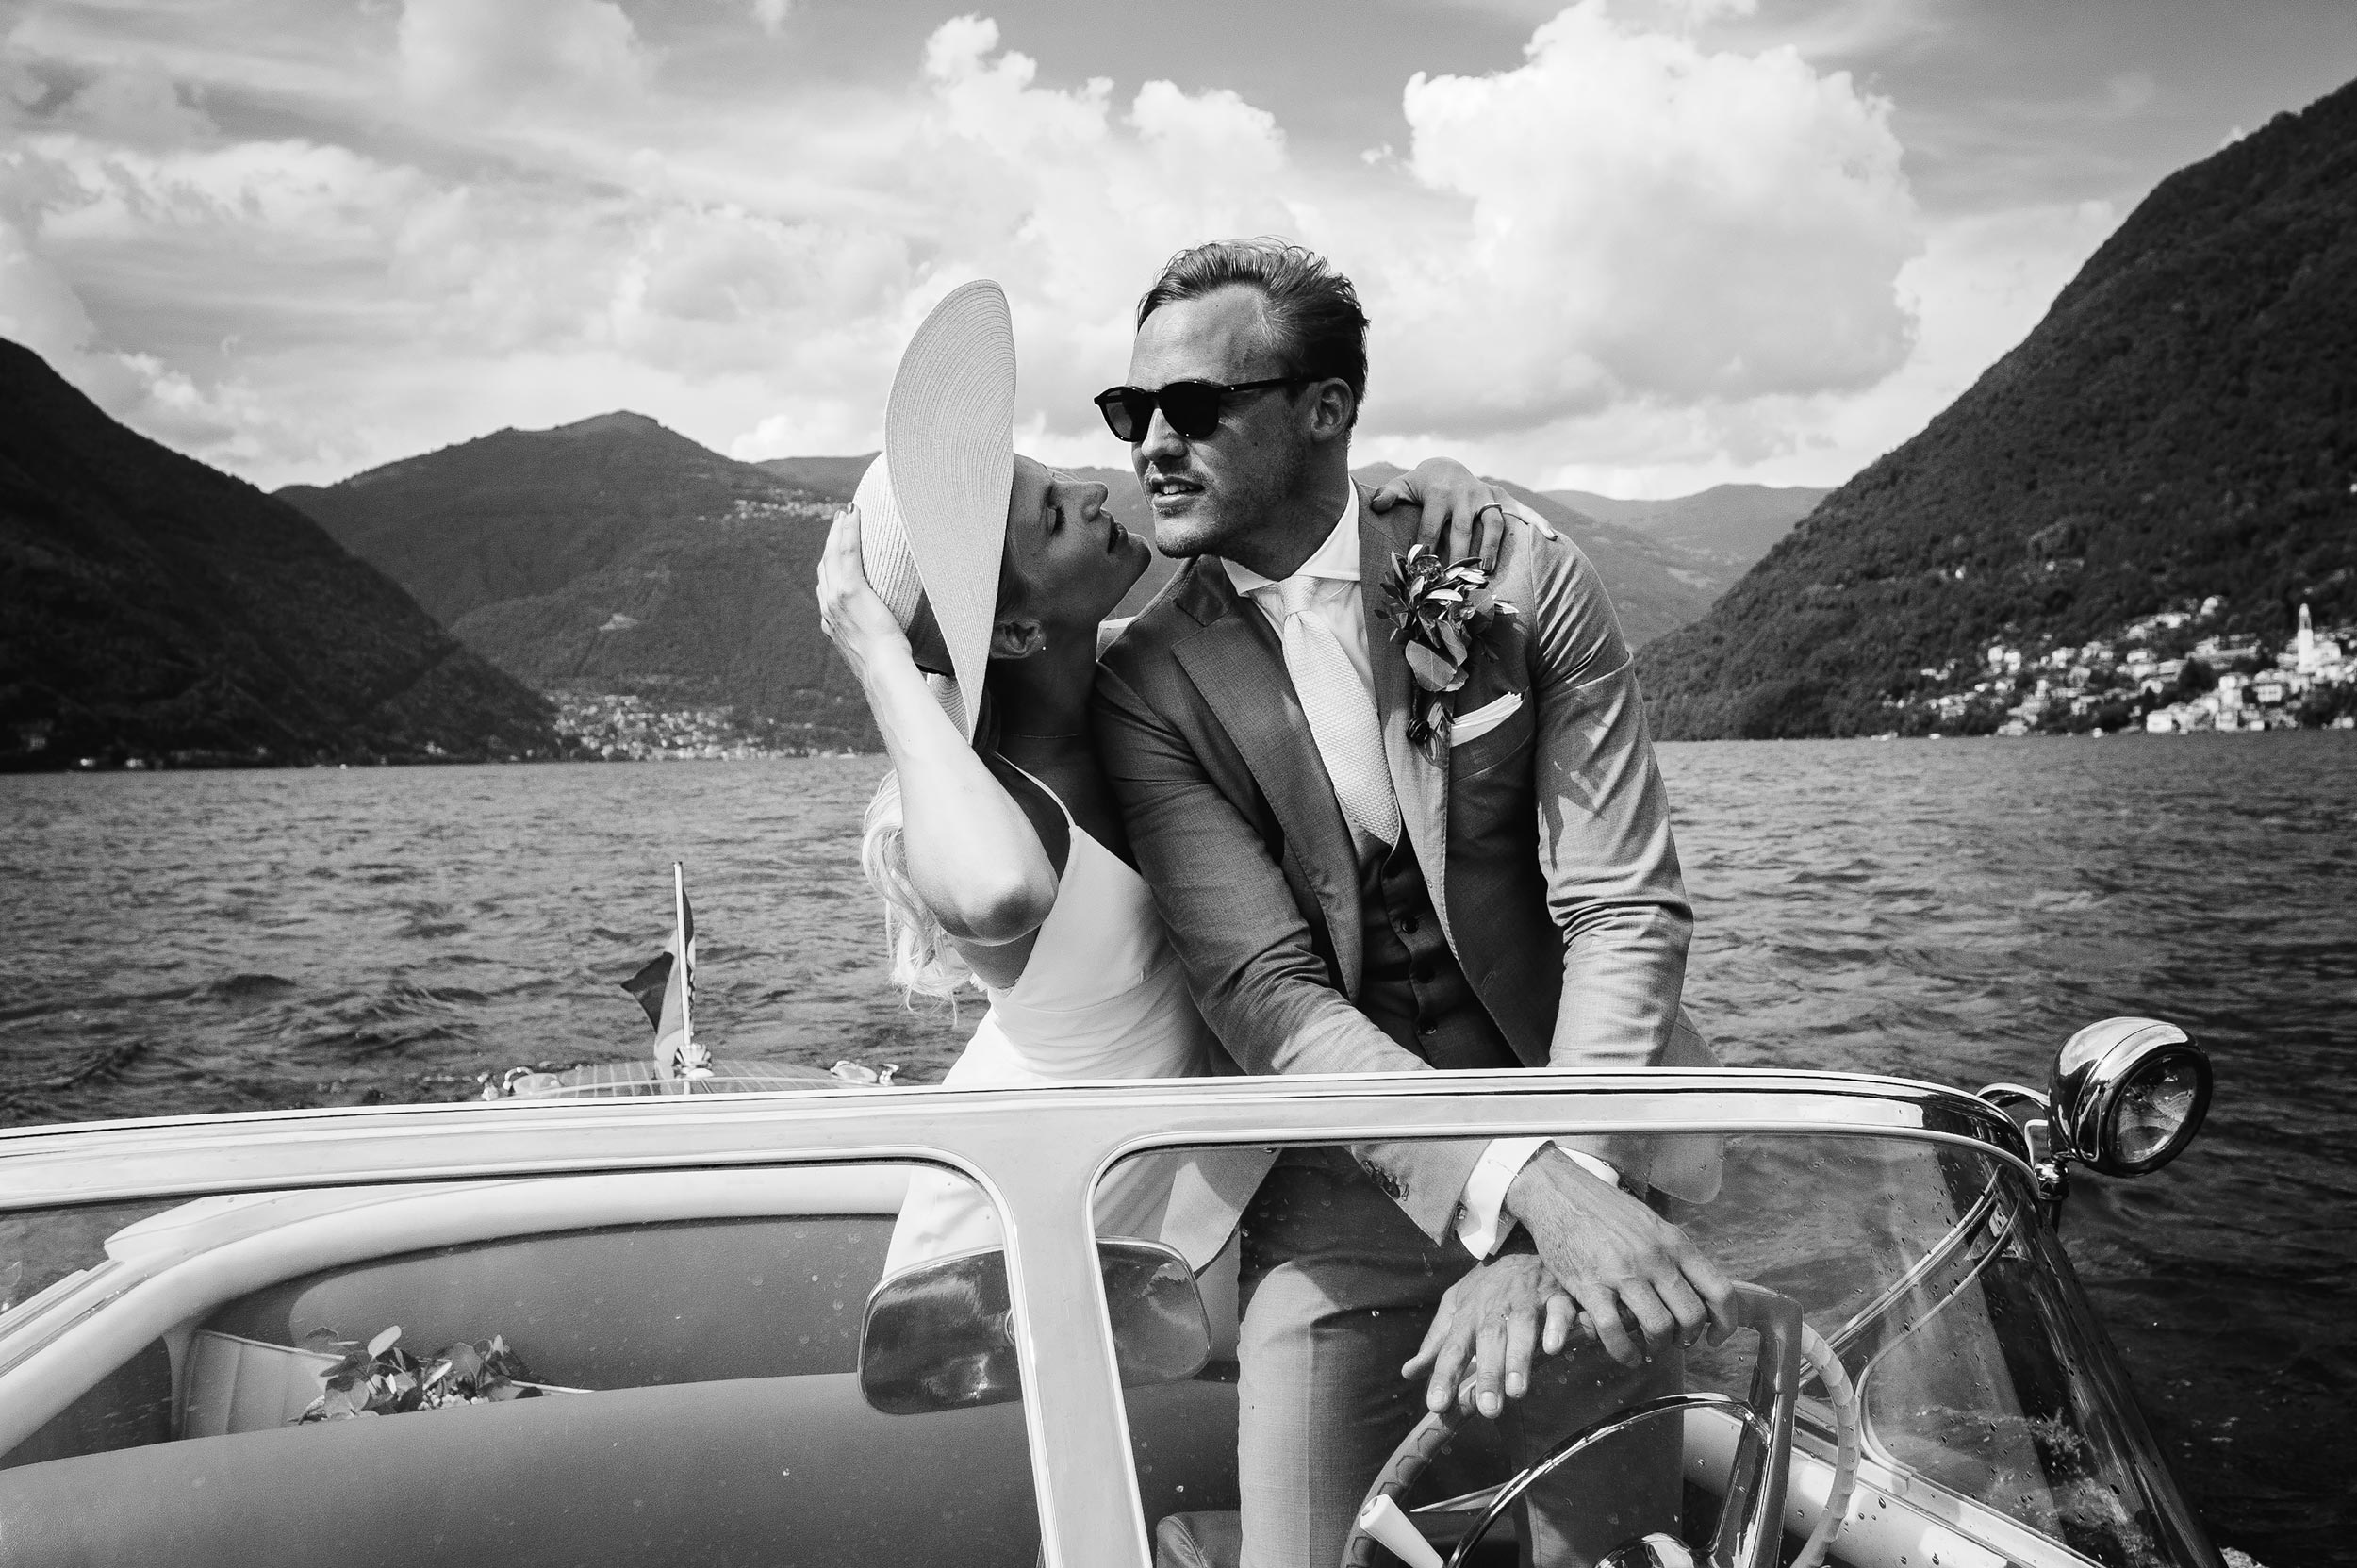 lake-como-wedding-photographer-Alessandro-Avenali-bride-and-groom-driving-riva-yacht-motorboat-black-and-white.jpg